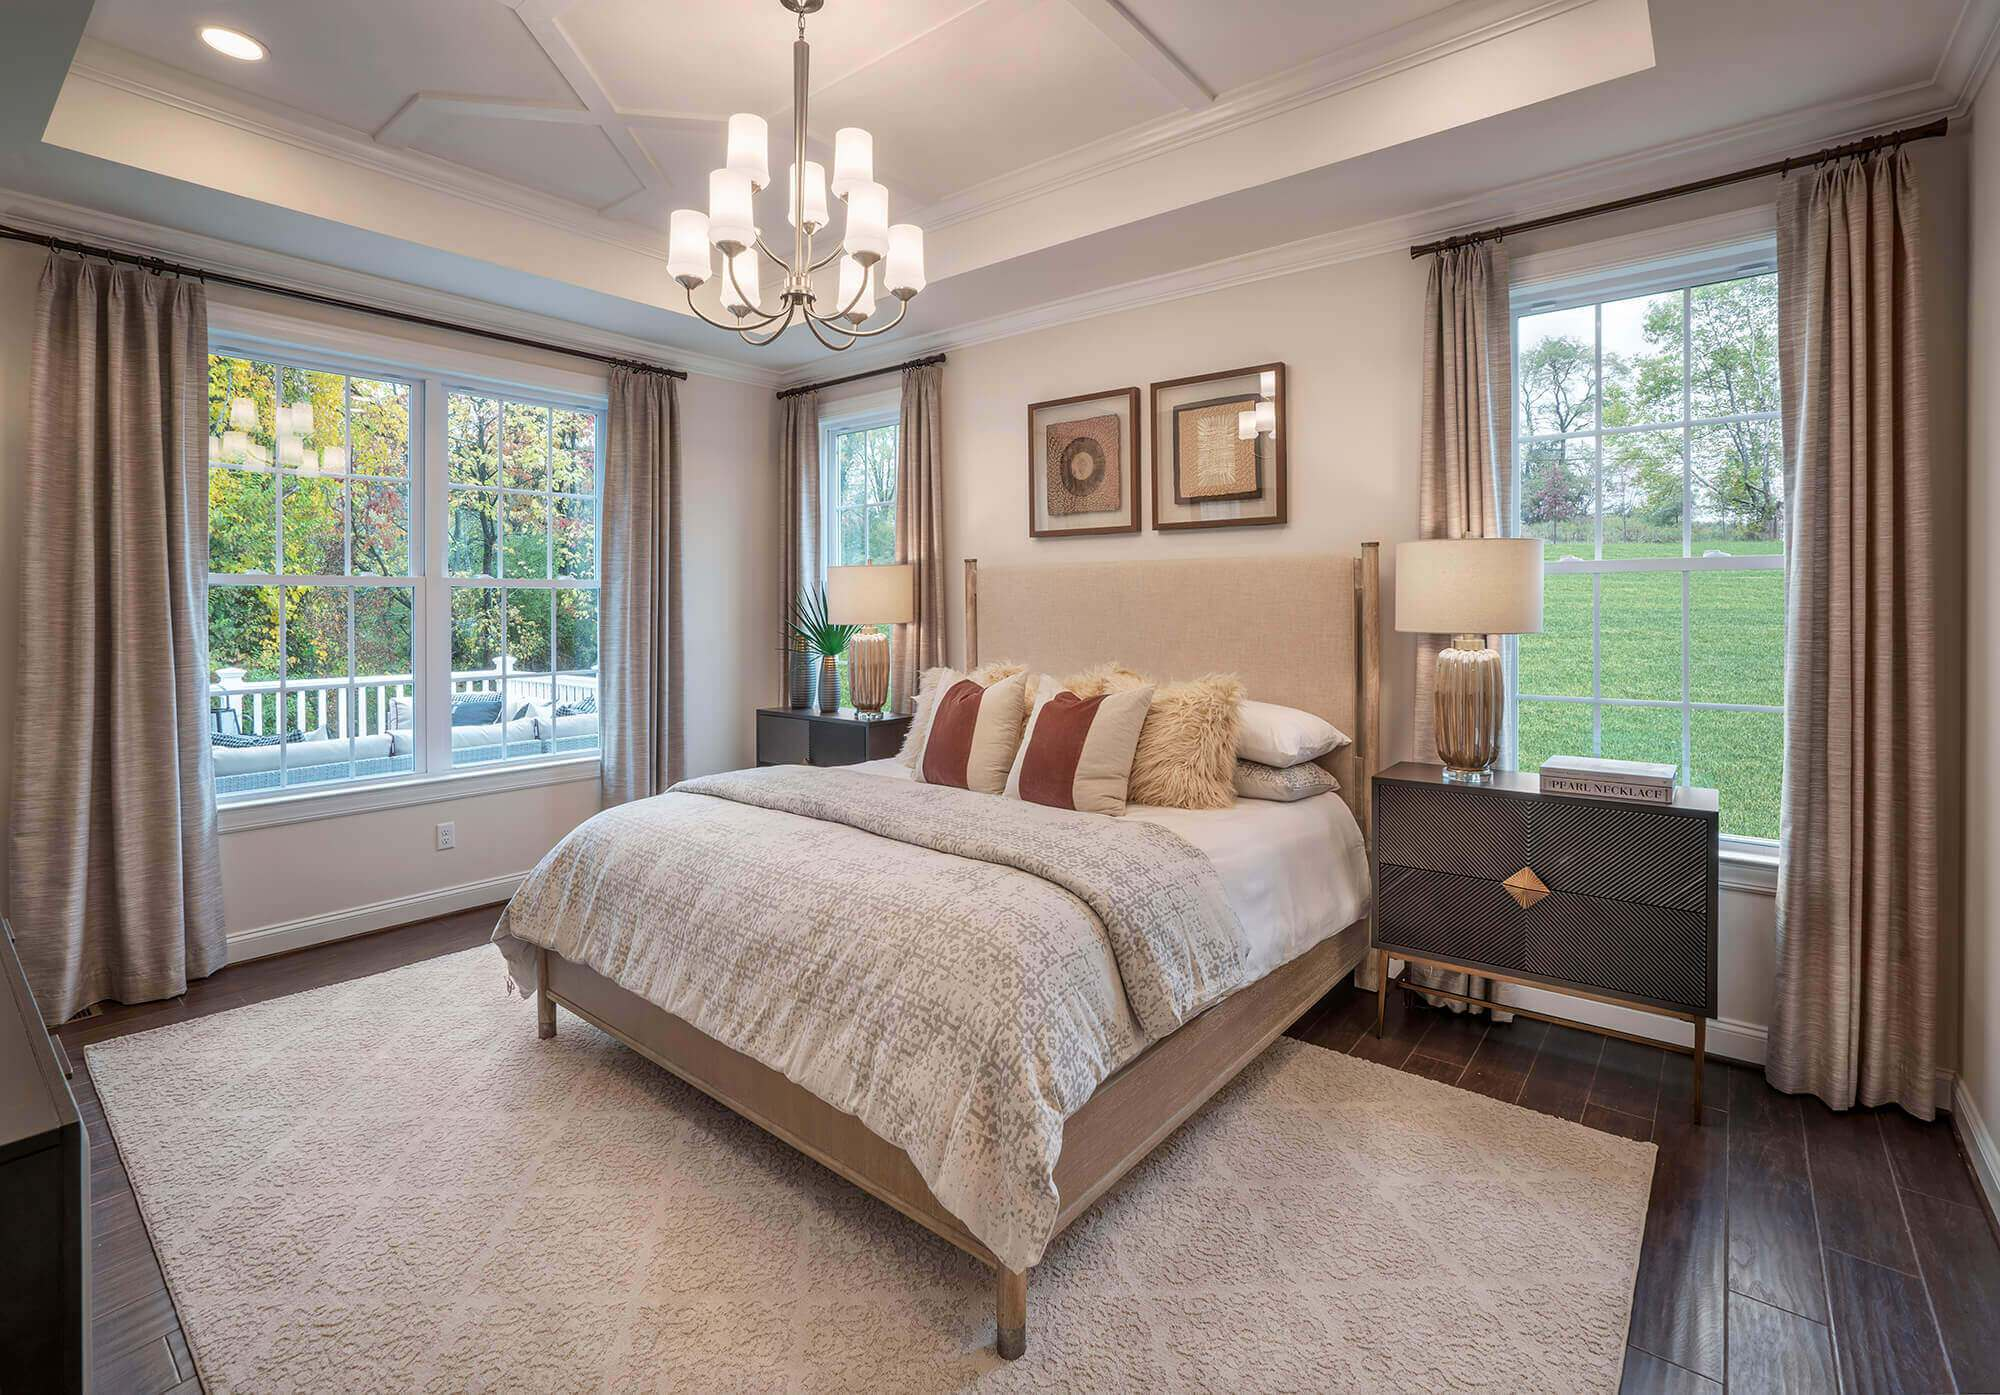 Bedroom featured in The Washington By Traditions of America in Lancaster, PA